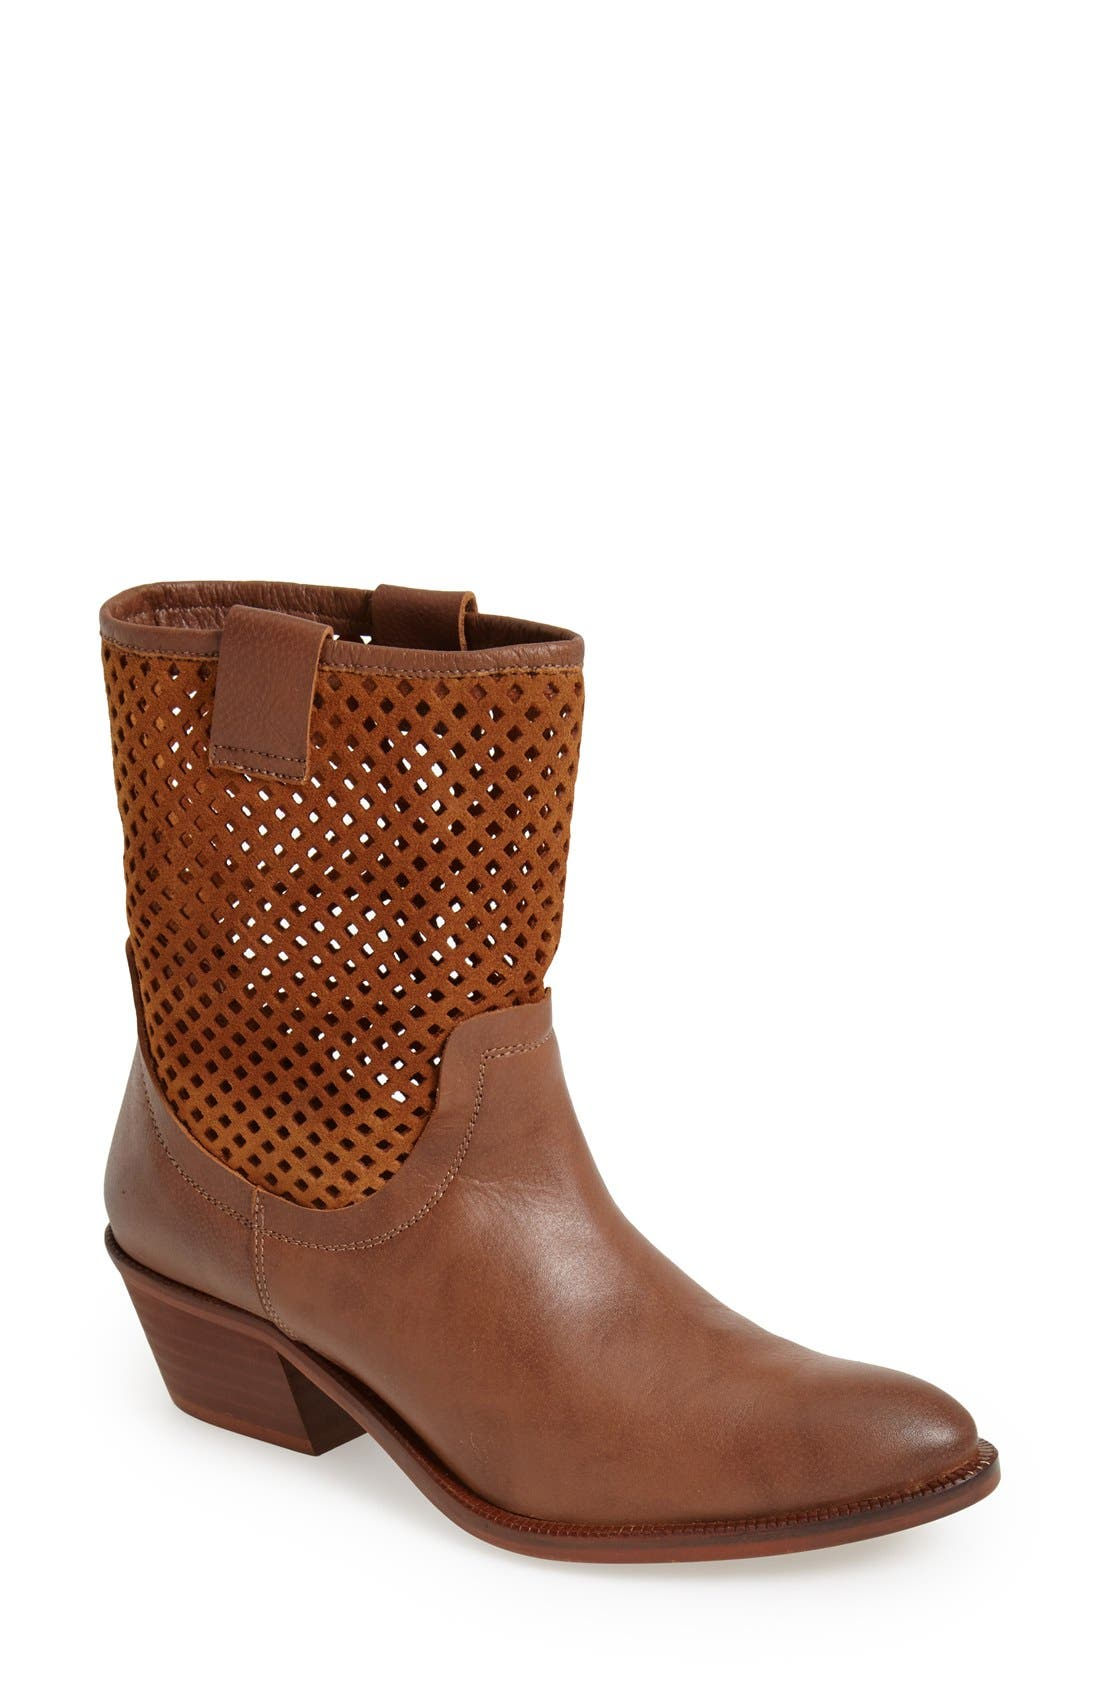 Alternate Image 1 Selected - SIXTYSEVEN 'Laurie' Perforated Leather Short Boot (Women)